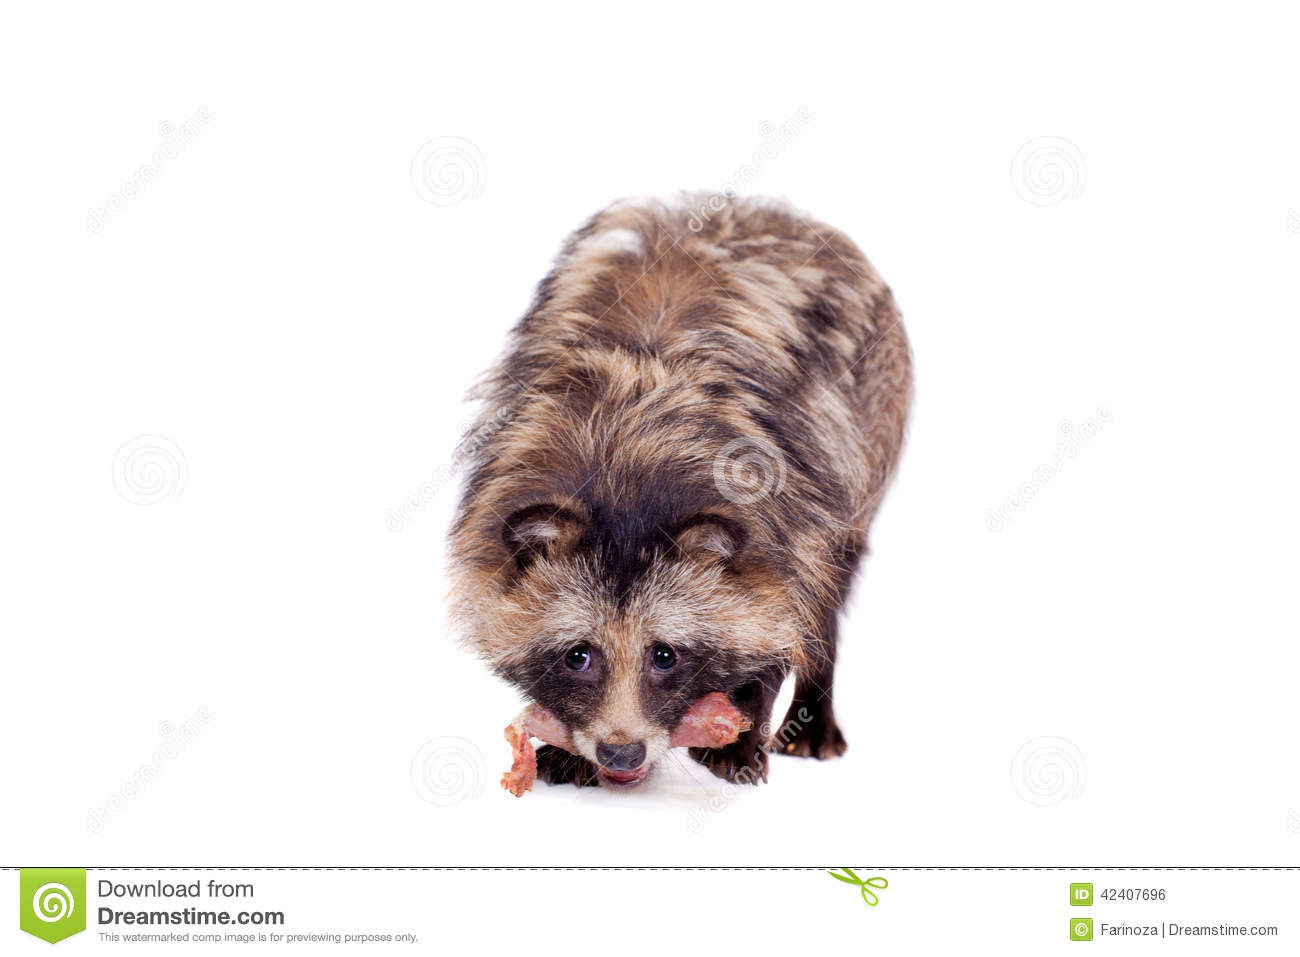 Raccoon Dog On White Background Stock Photo.